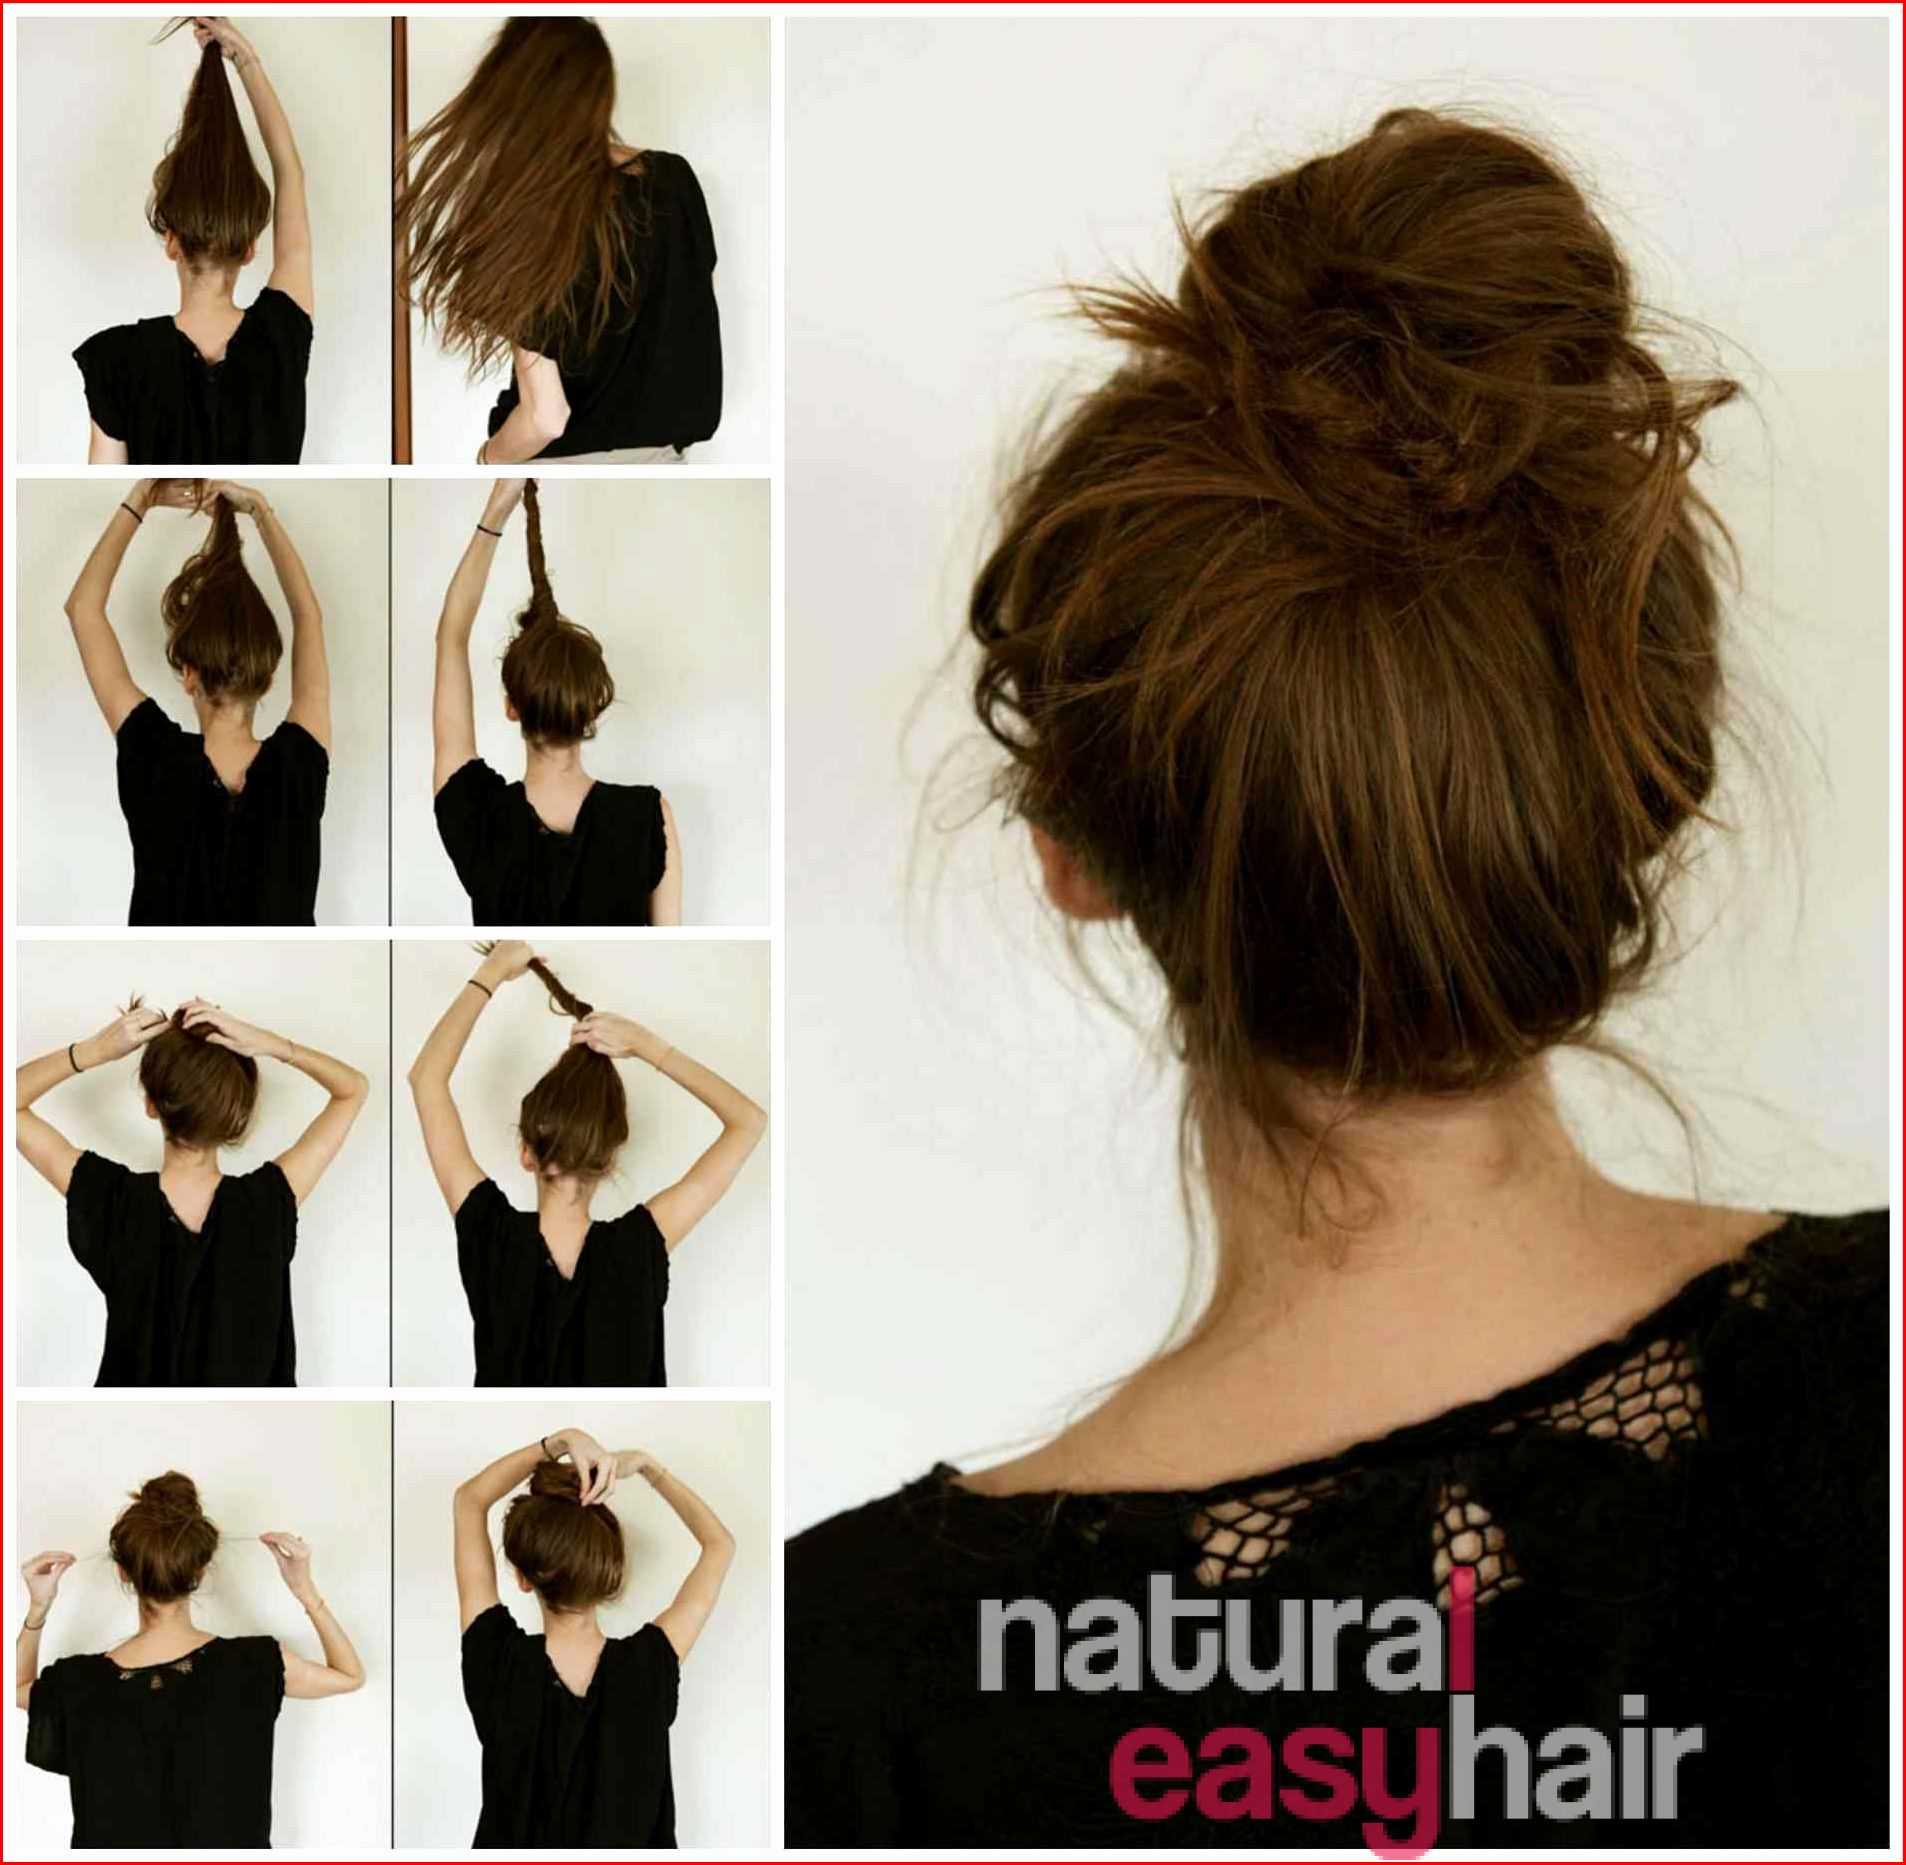 Perm Kits For Long Hairstyles At Home Easy Natural Hairstyles Long Hair Styles Natural Hair Styles Easy Hair Styles